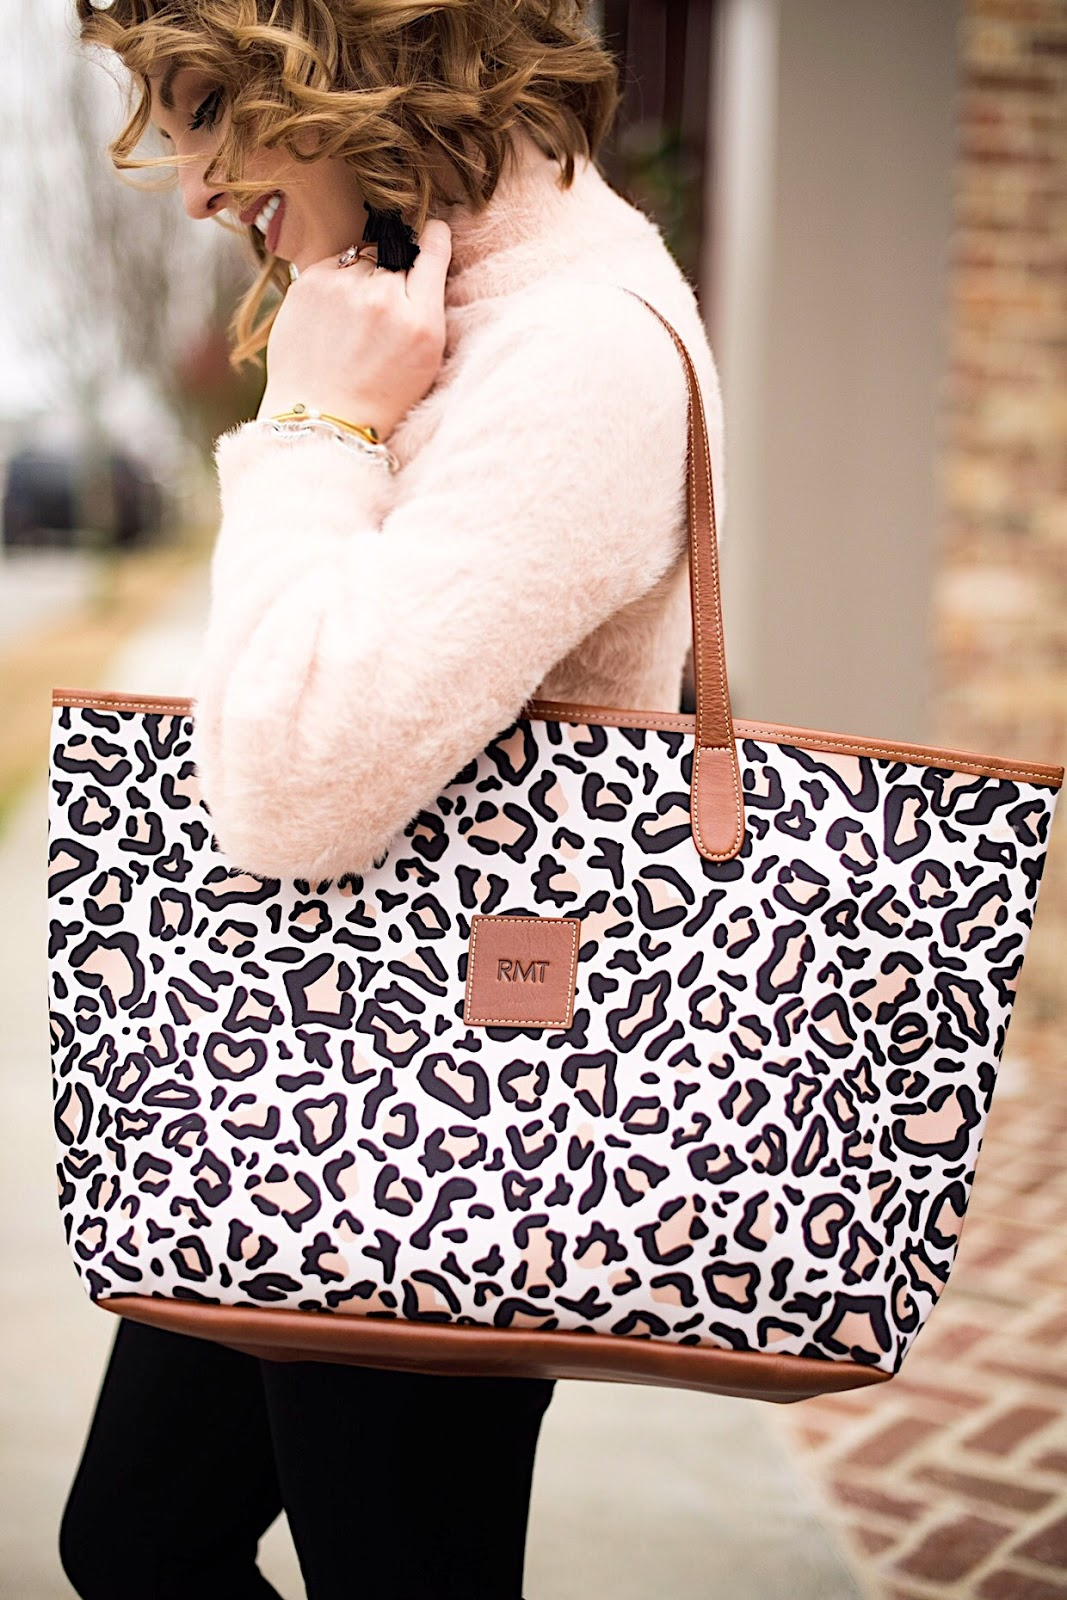 Barrington Gifts St. Anne Tote - SOMETHING DELIGHTFUL BLOG